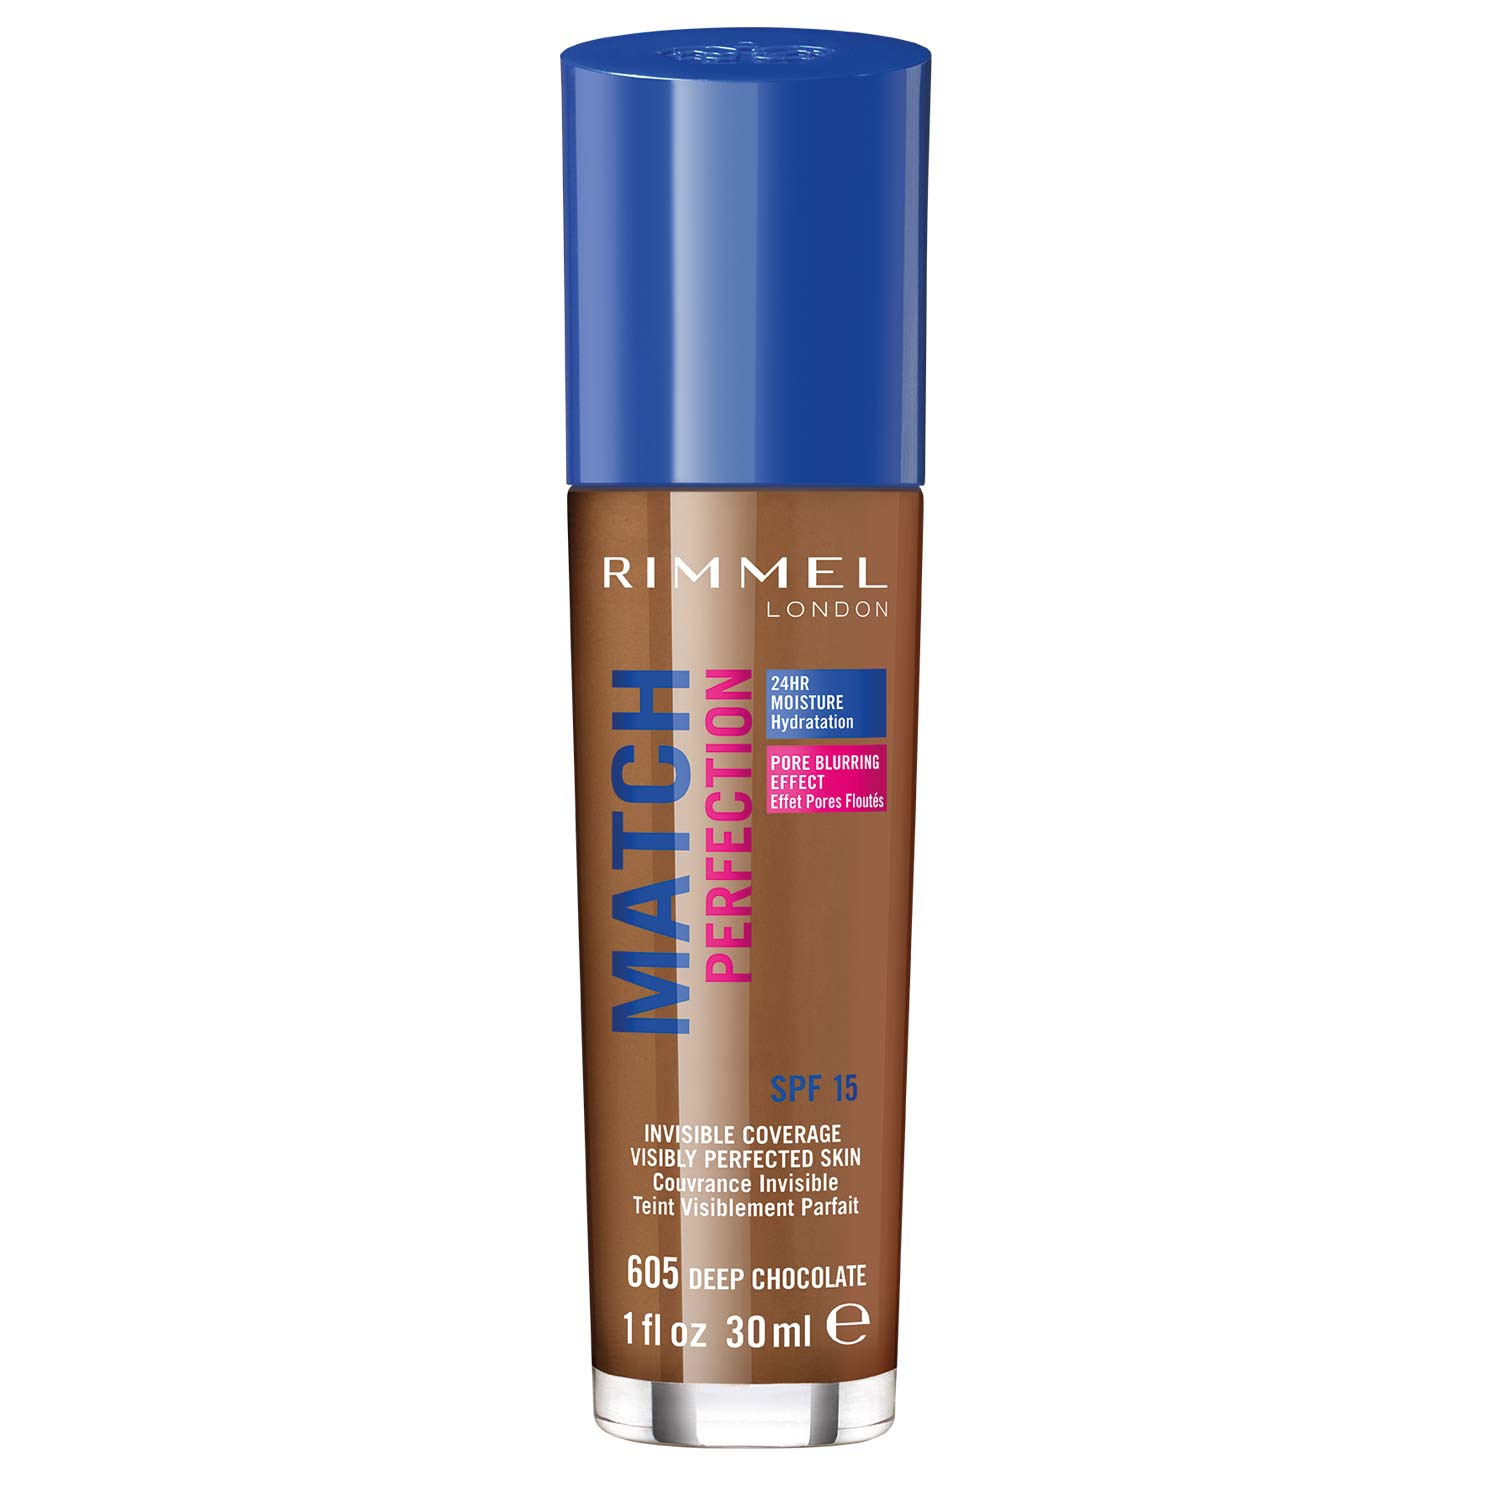 Rimmel Match Perfect, £8.95